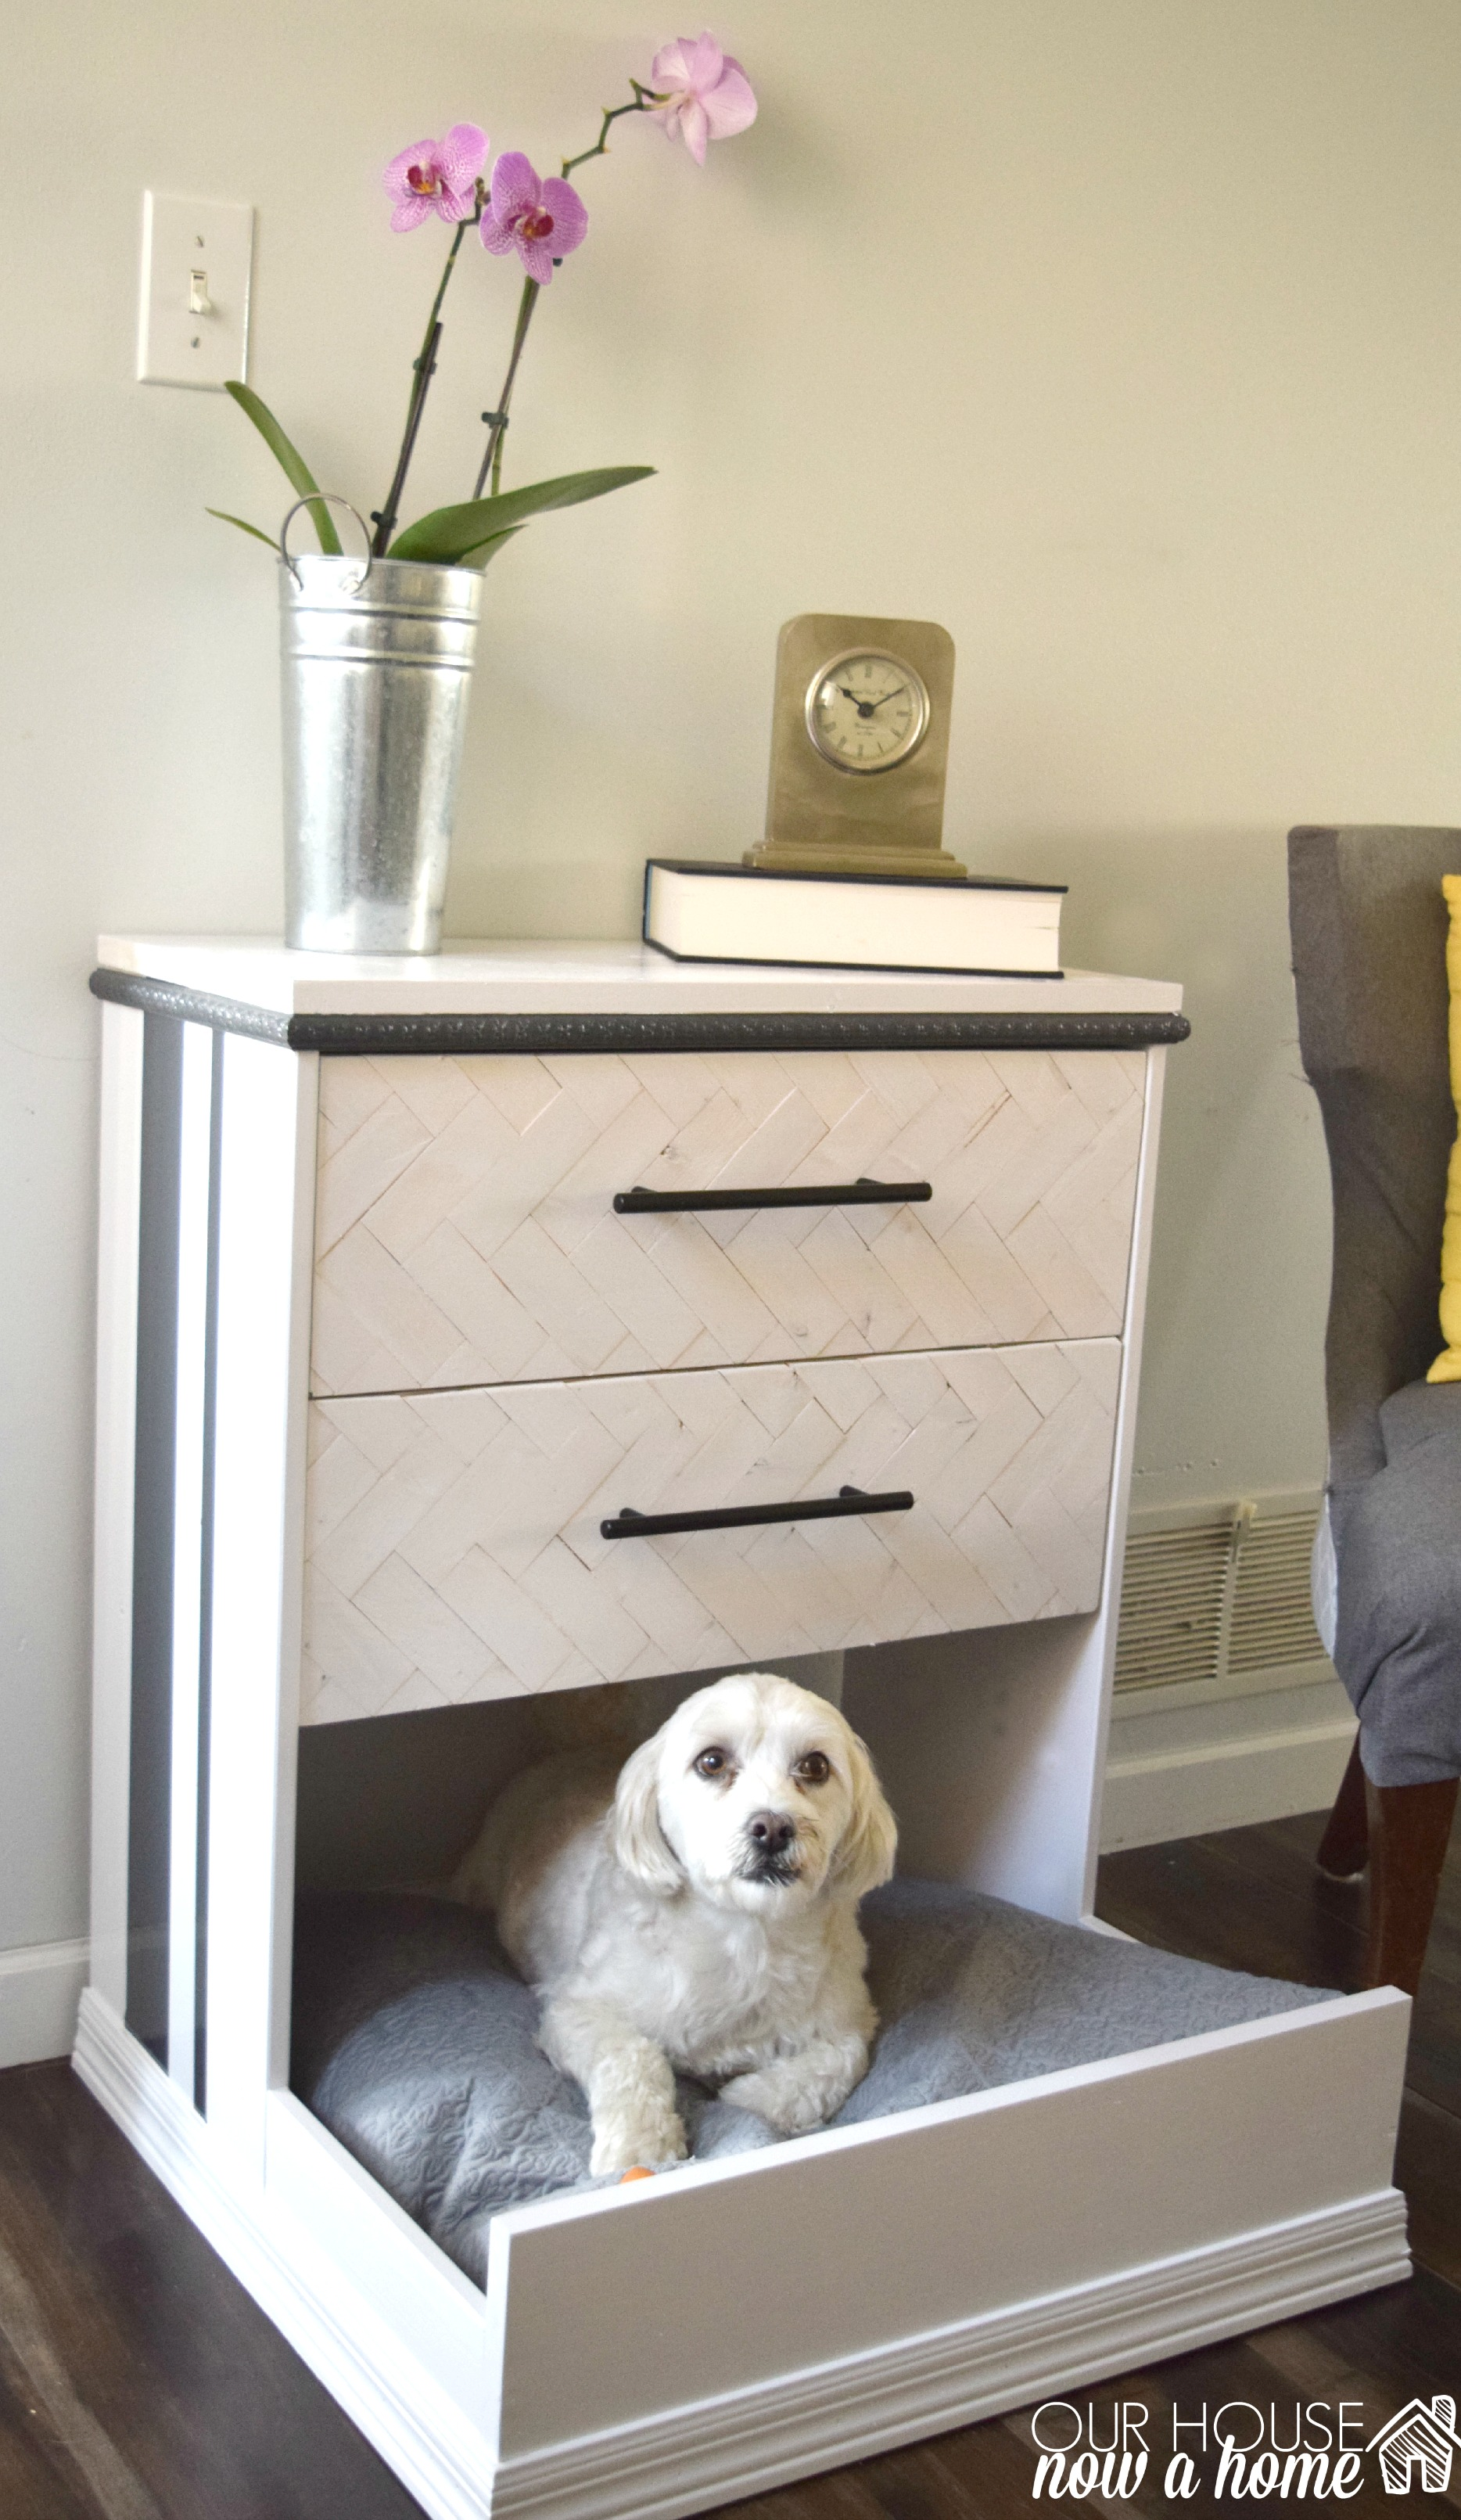 13 Furniture Transformations Our House Now A Home